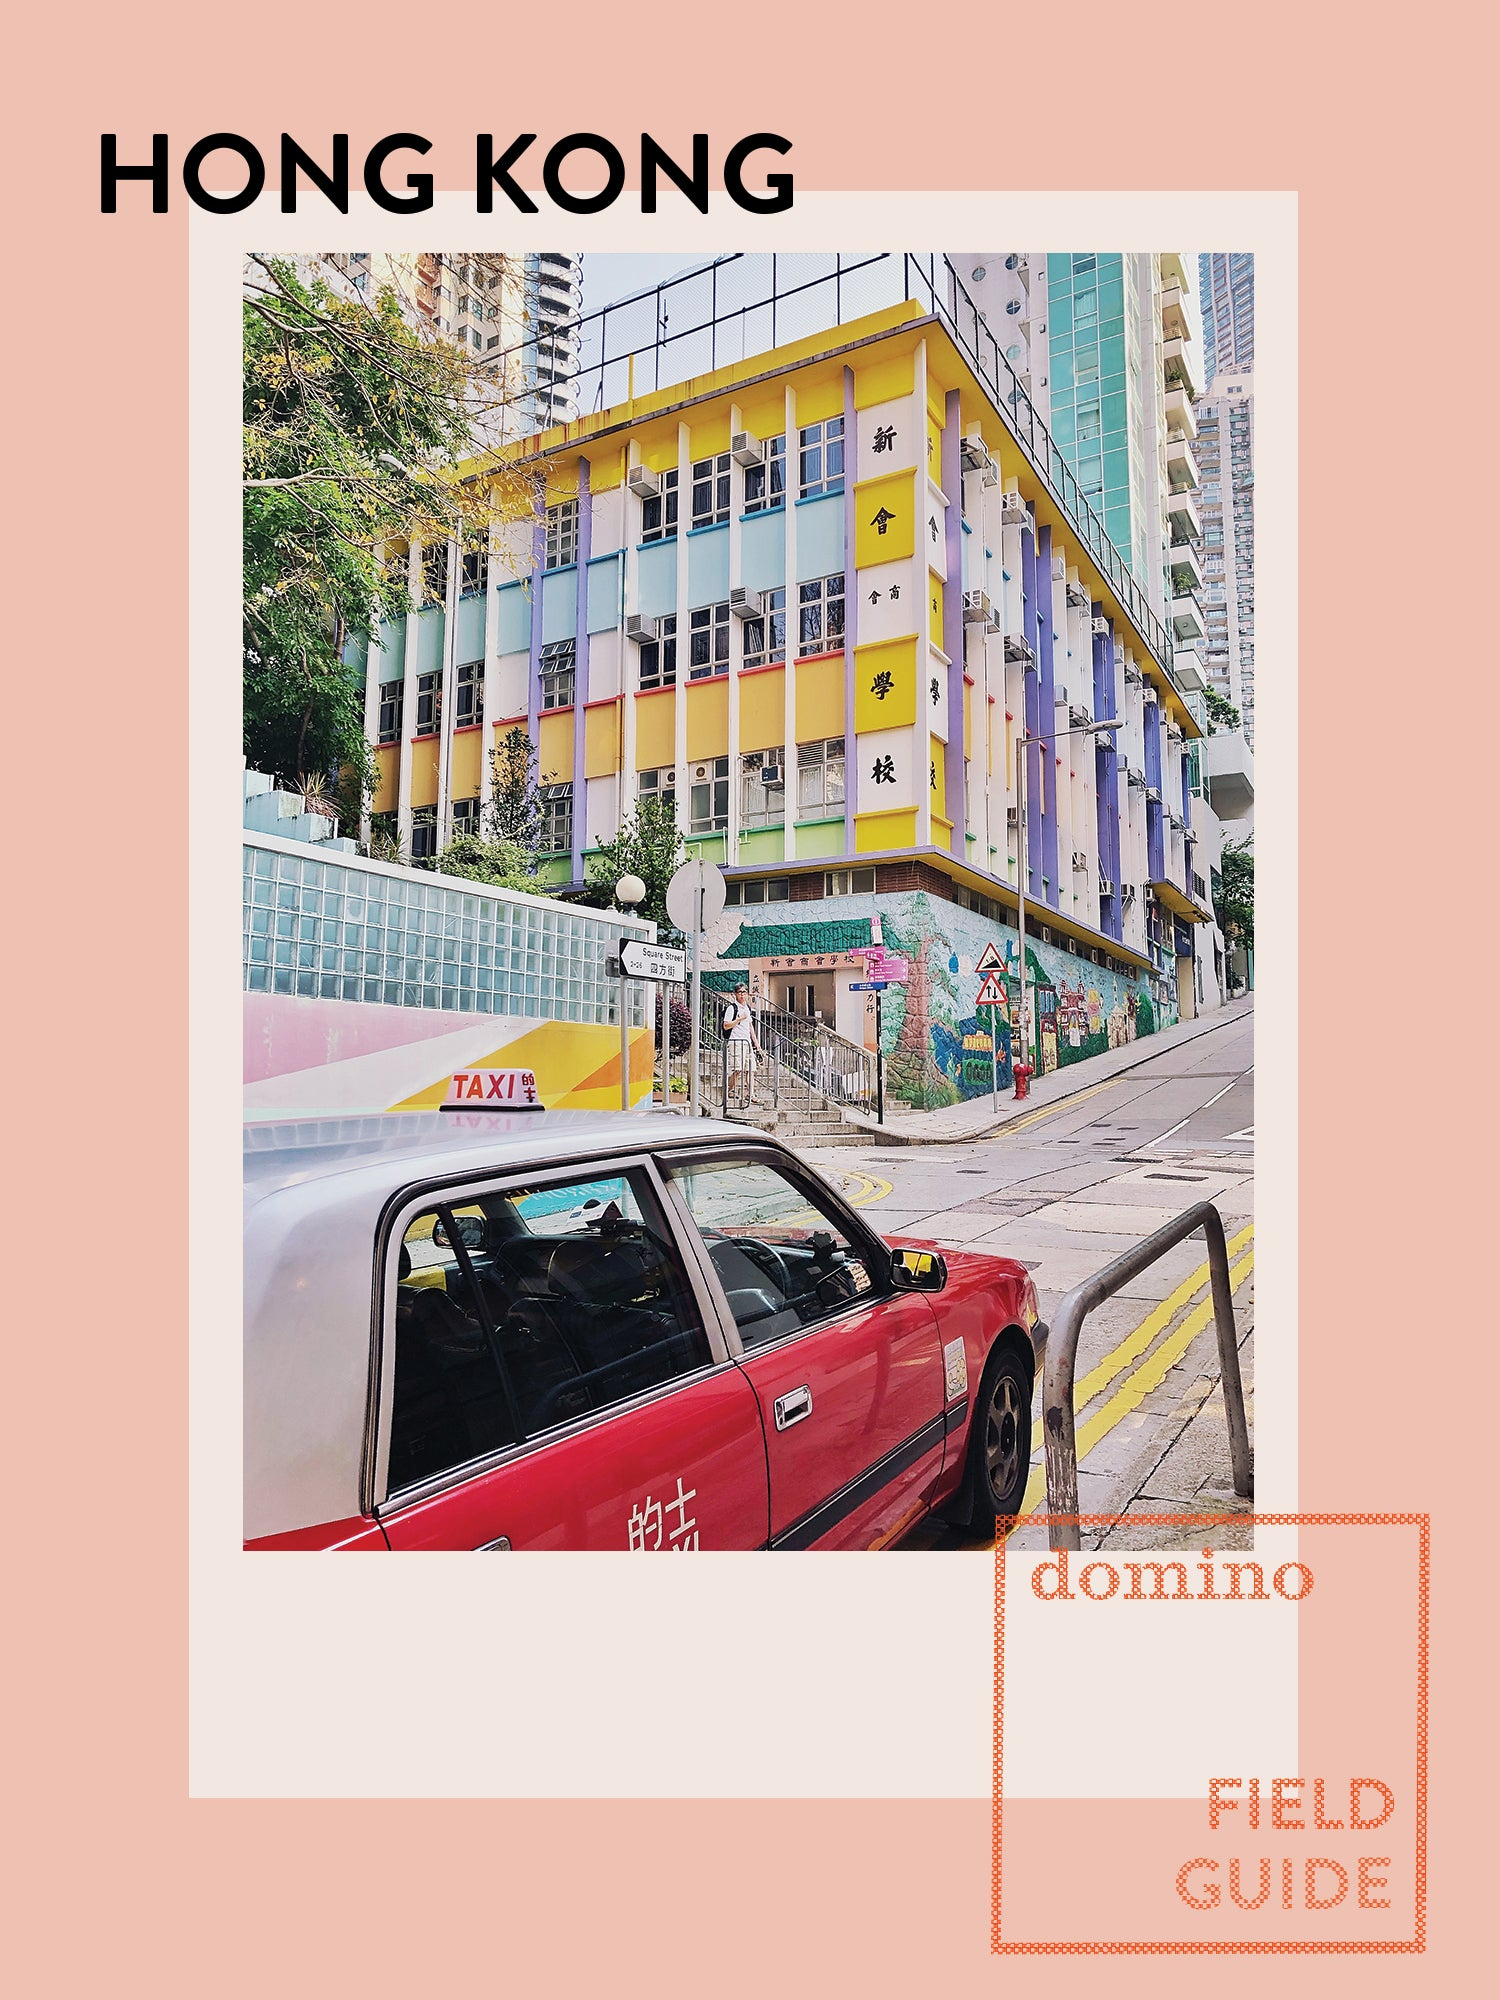 00_feature_HongKong_FieldGuide